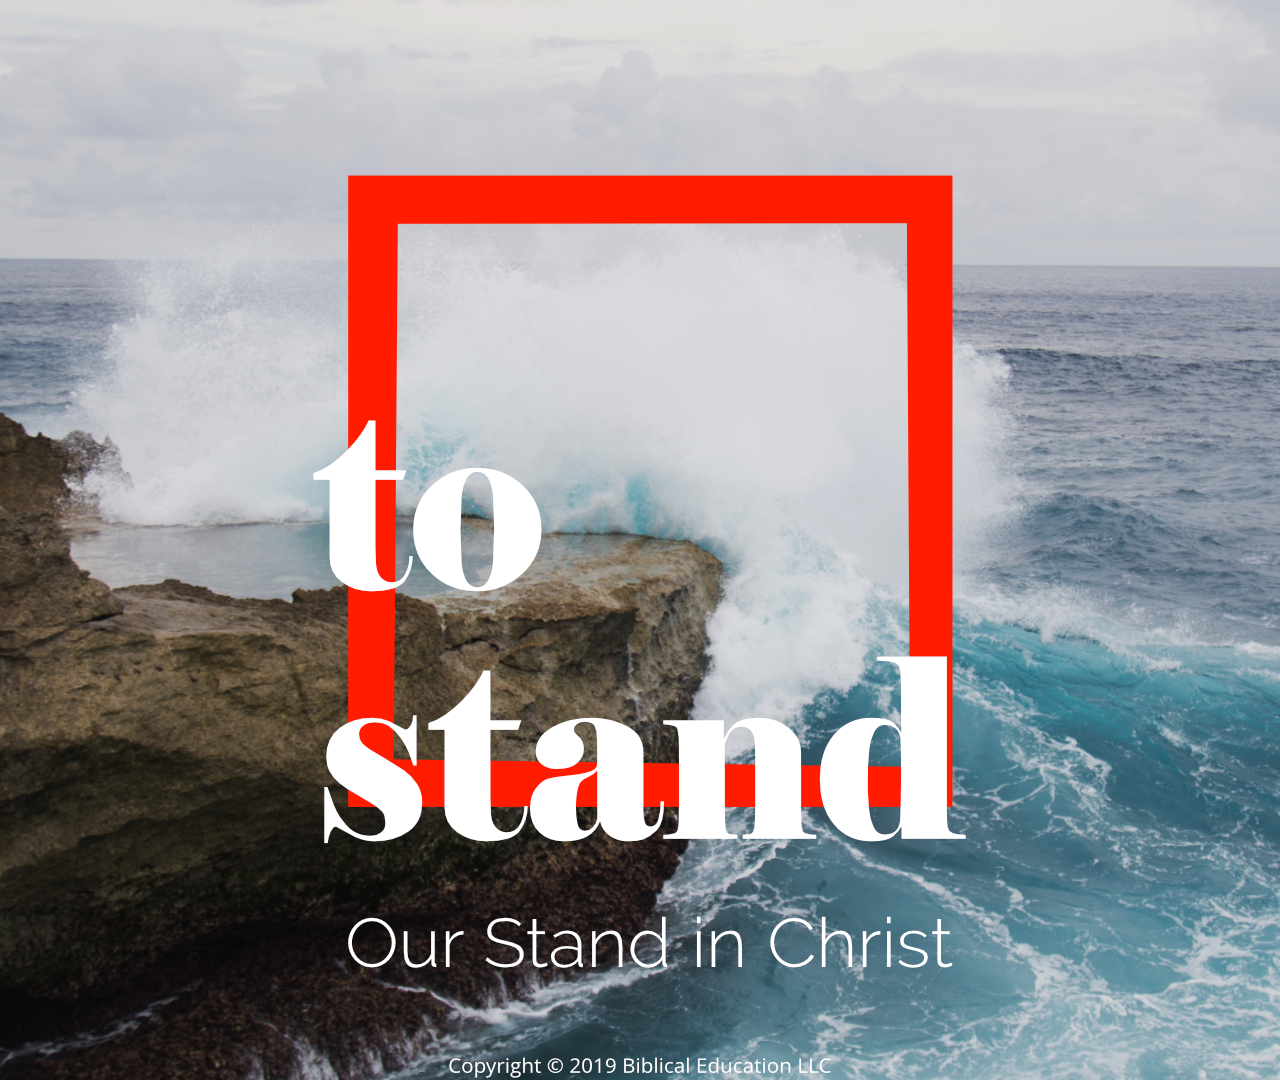 our-stand-in-christ-horzontal_1